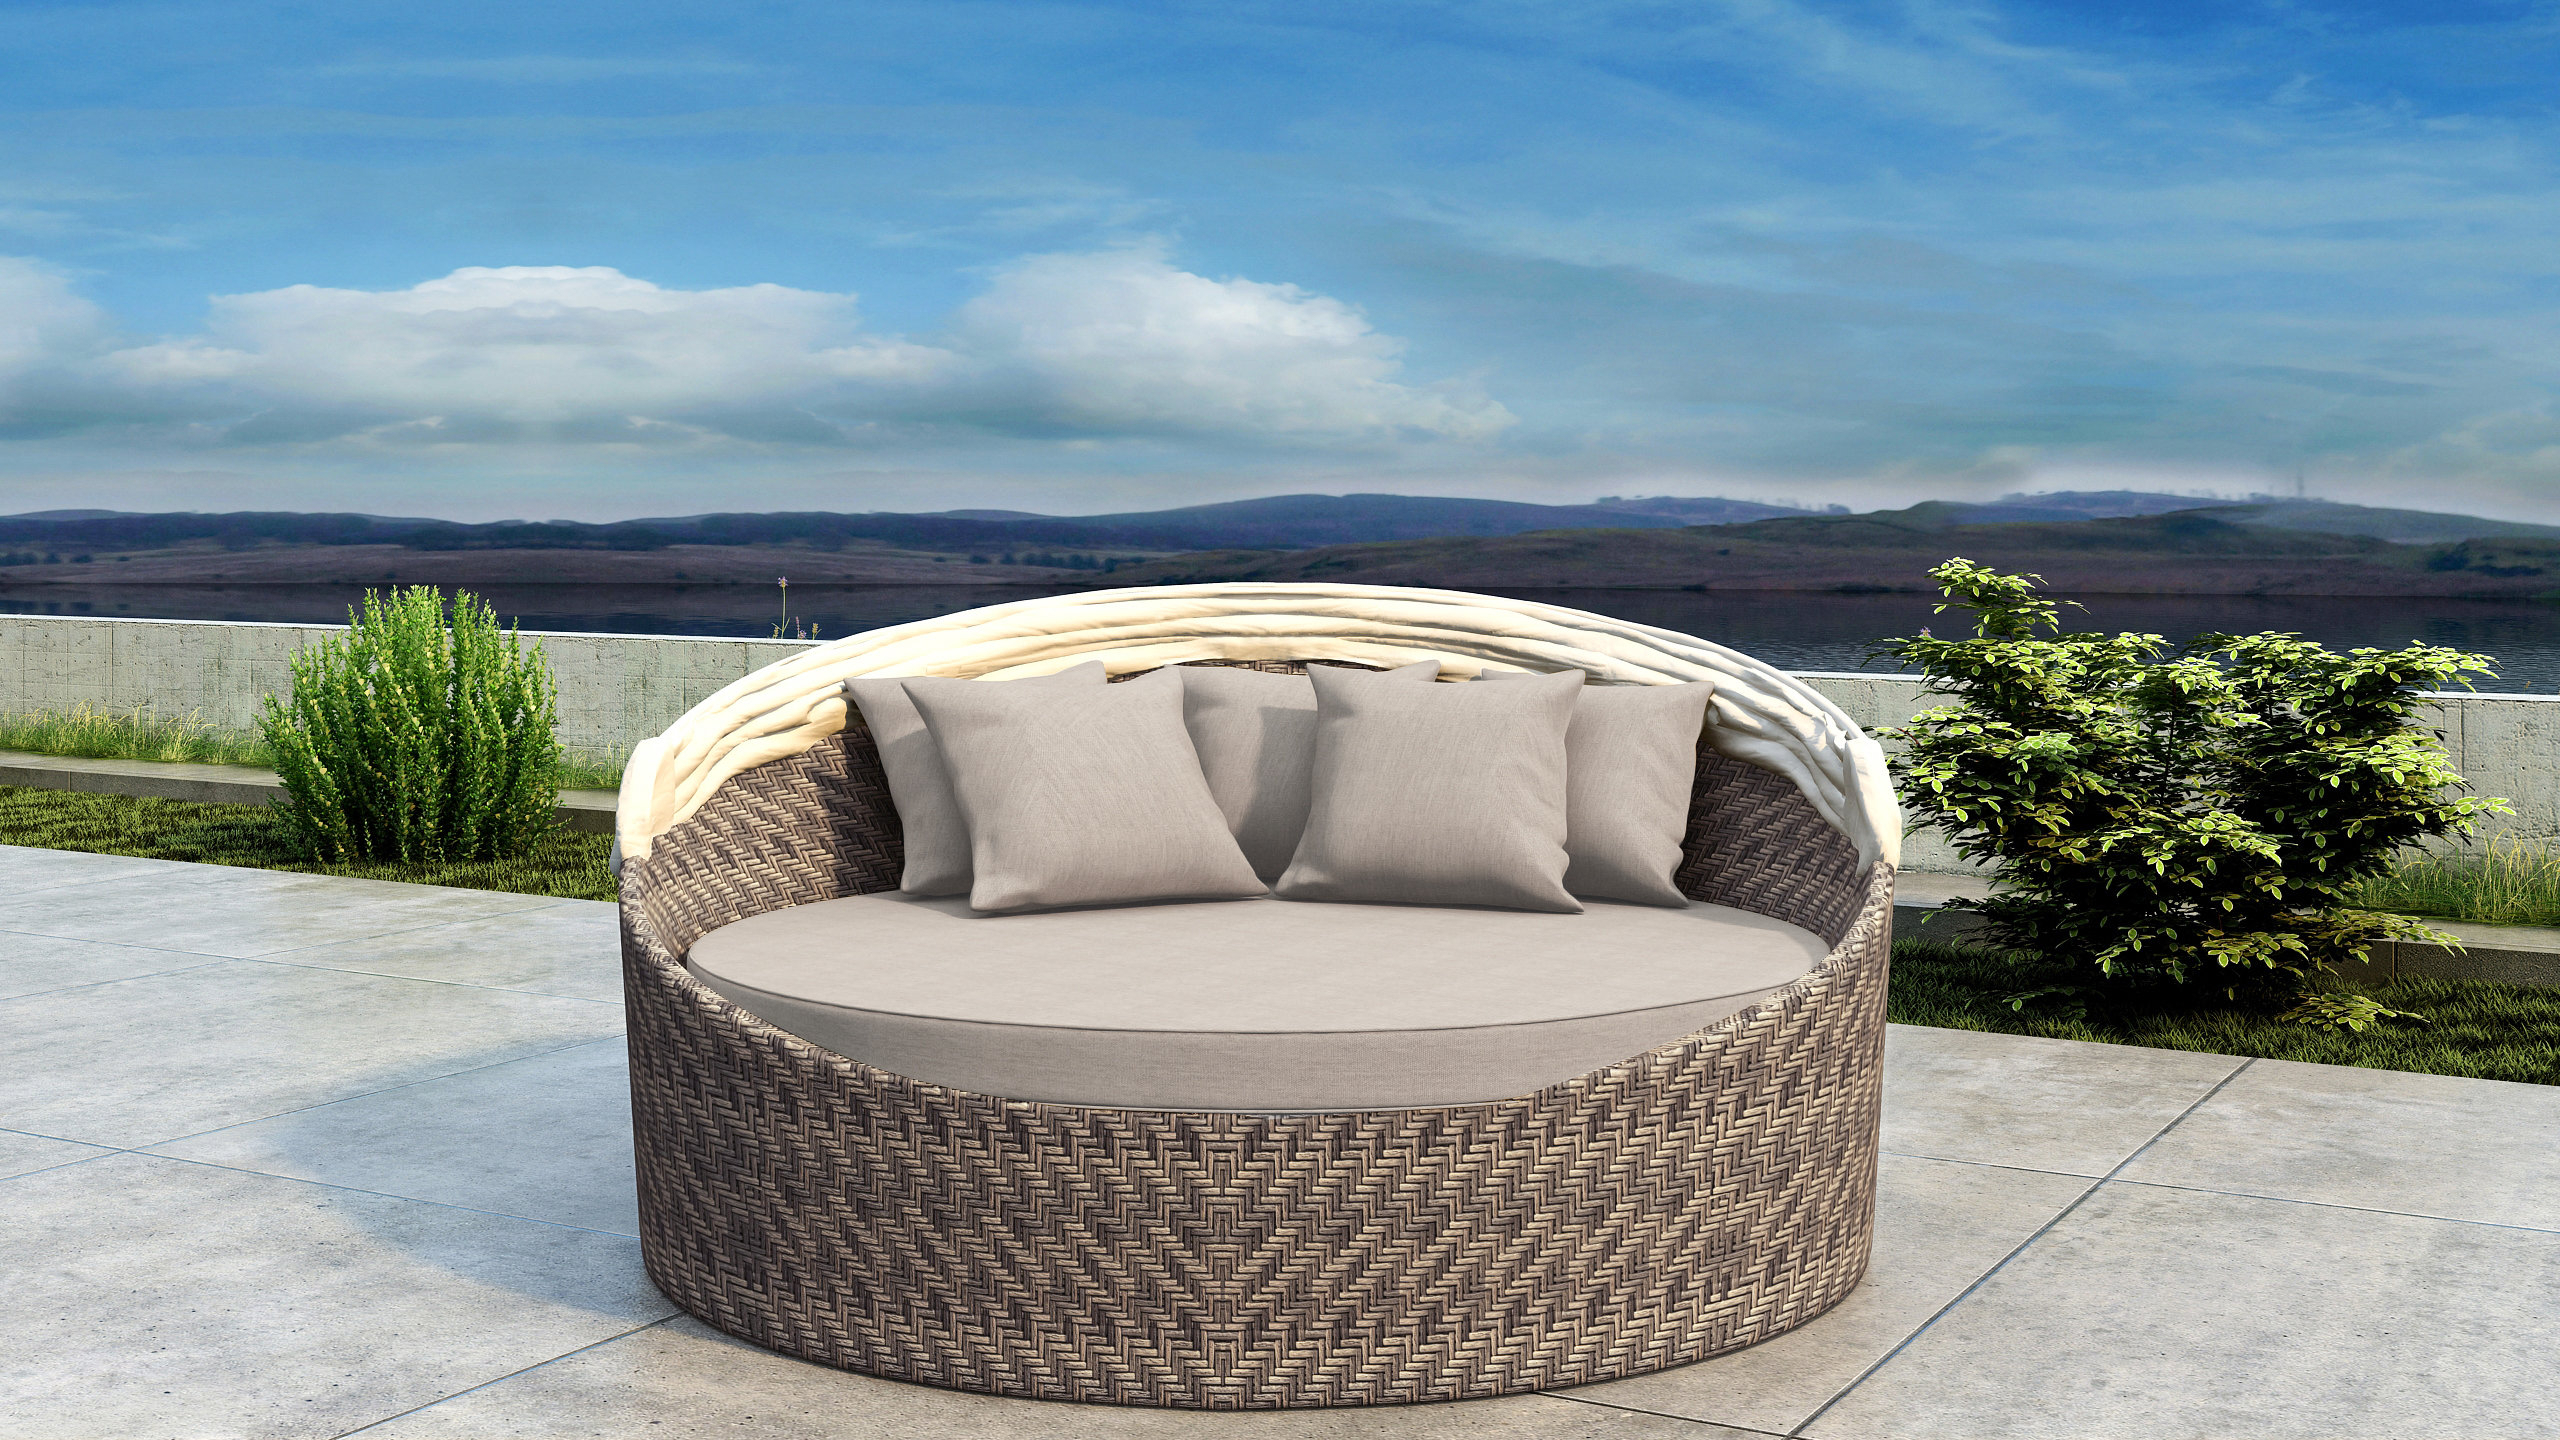 2020 Gillham Patio Daybed With Sunbrella Cushion Inside Grosvenor Bamboo Patio Daybeds With Cushions (View 1 of 20)